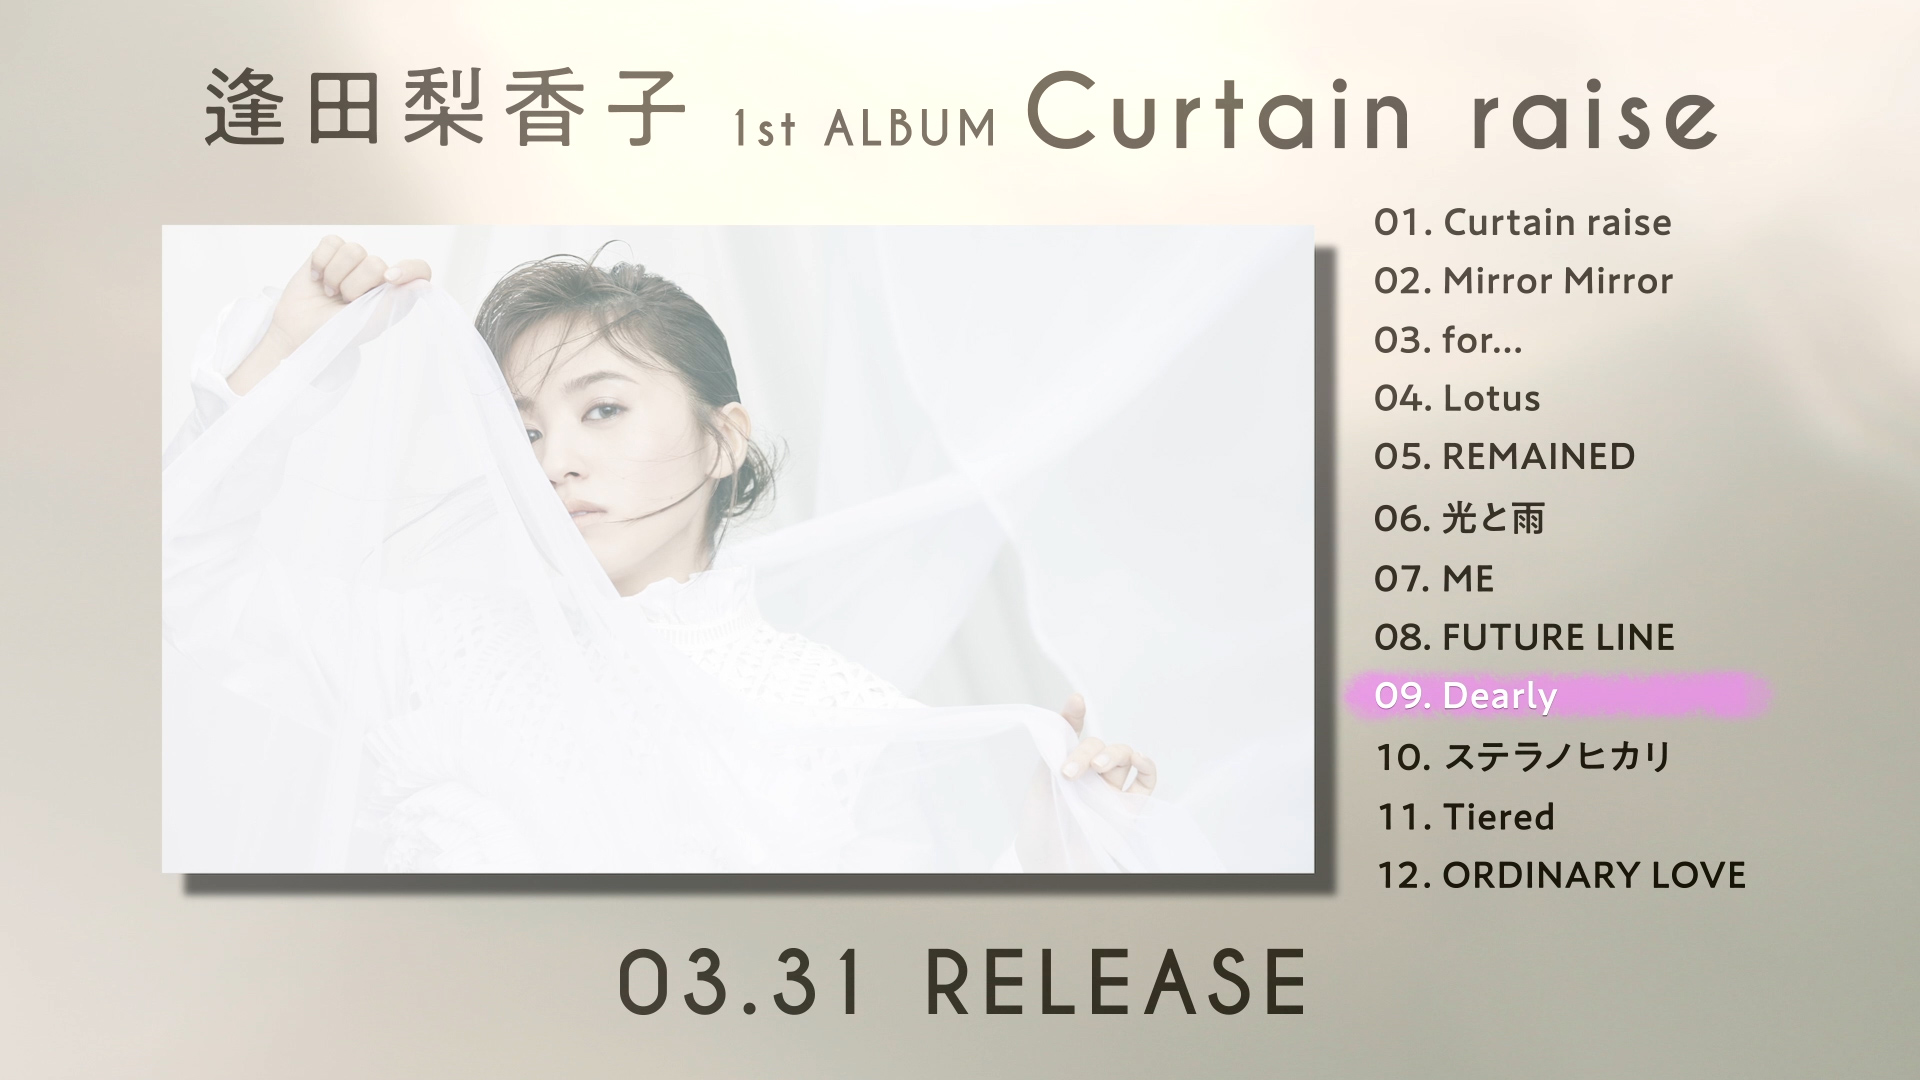 逢田梨香子 1st Album「Curtain raise」 全曲 Teaser